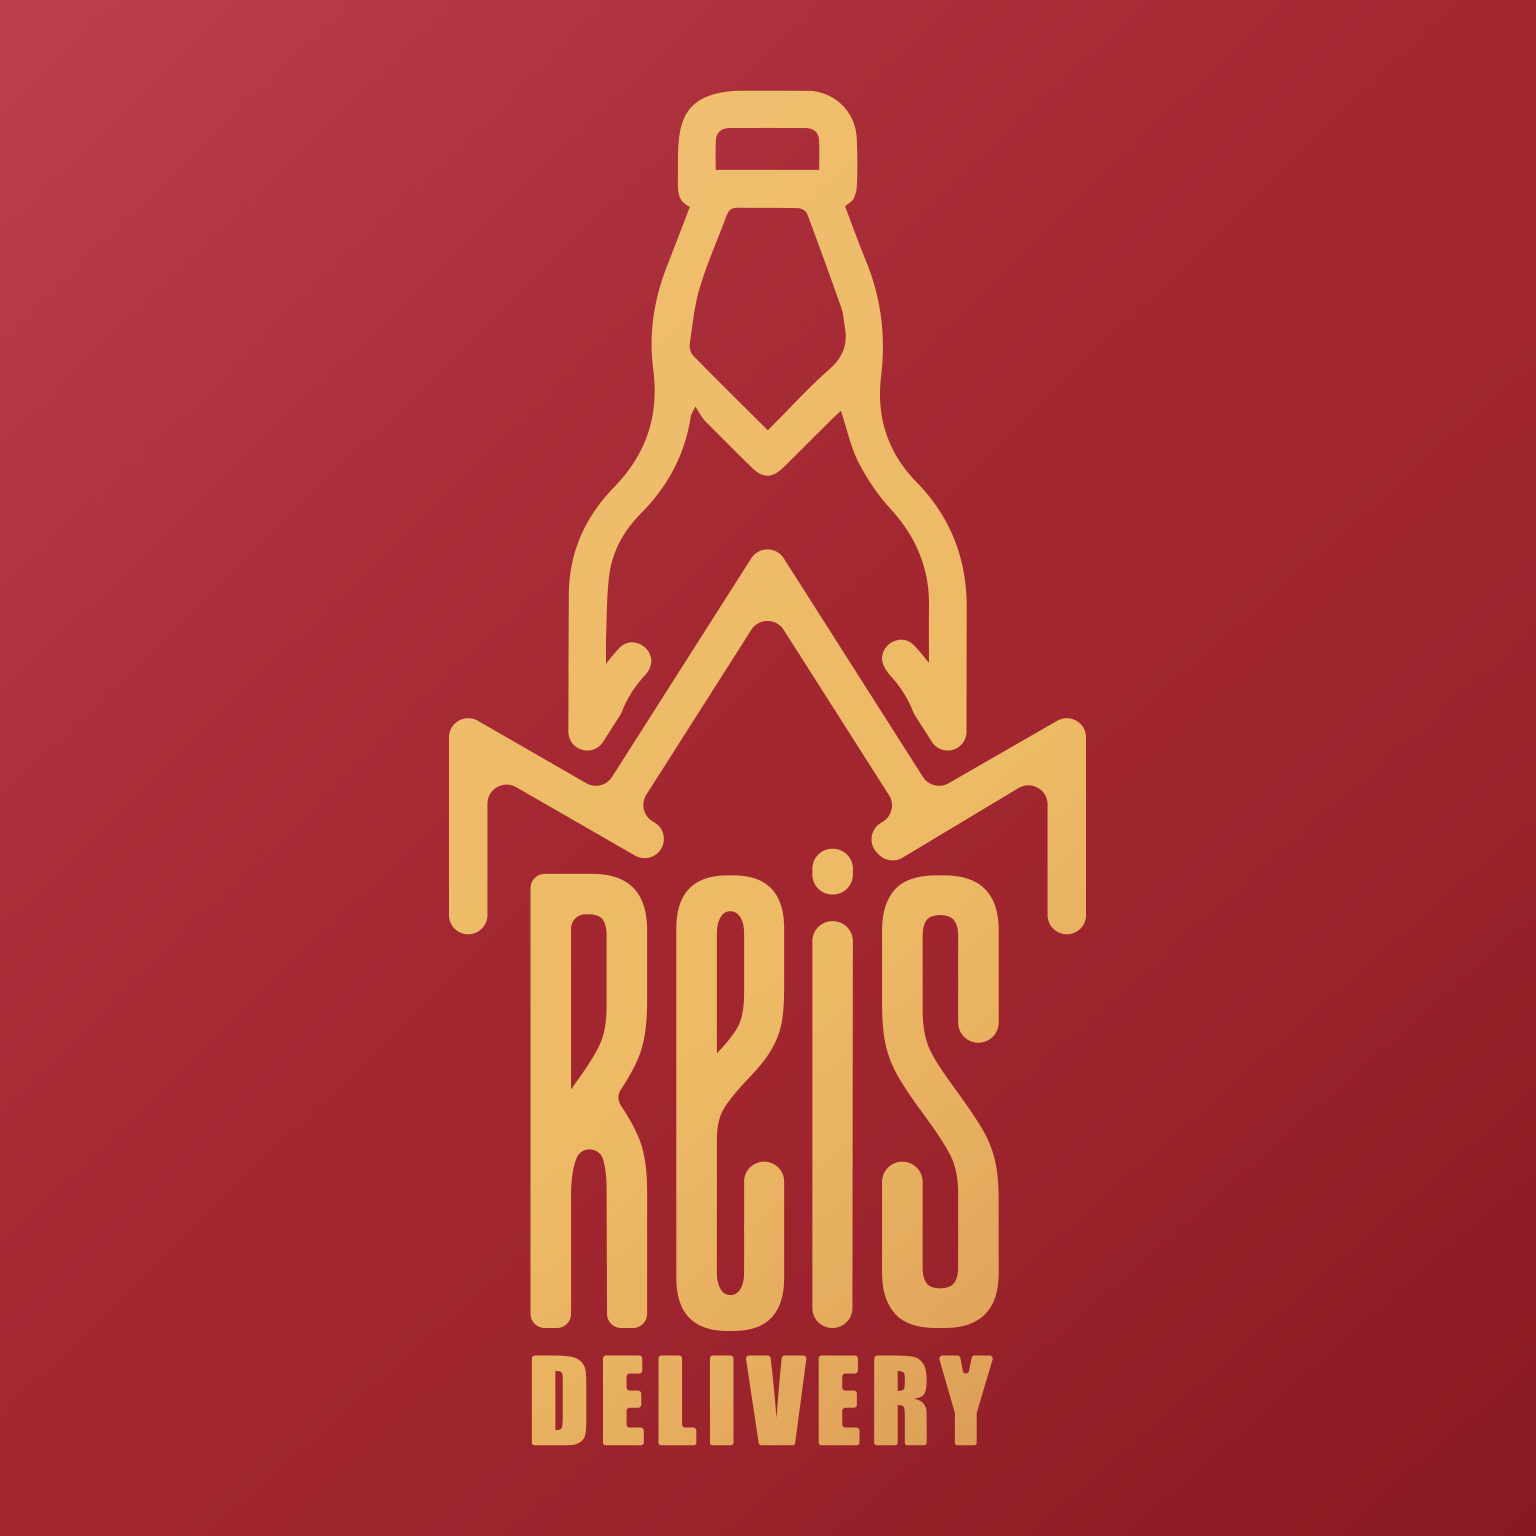 REIS DELIVERY